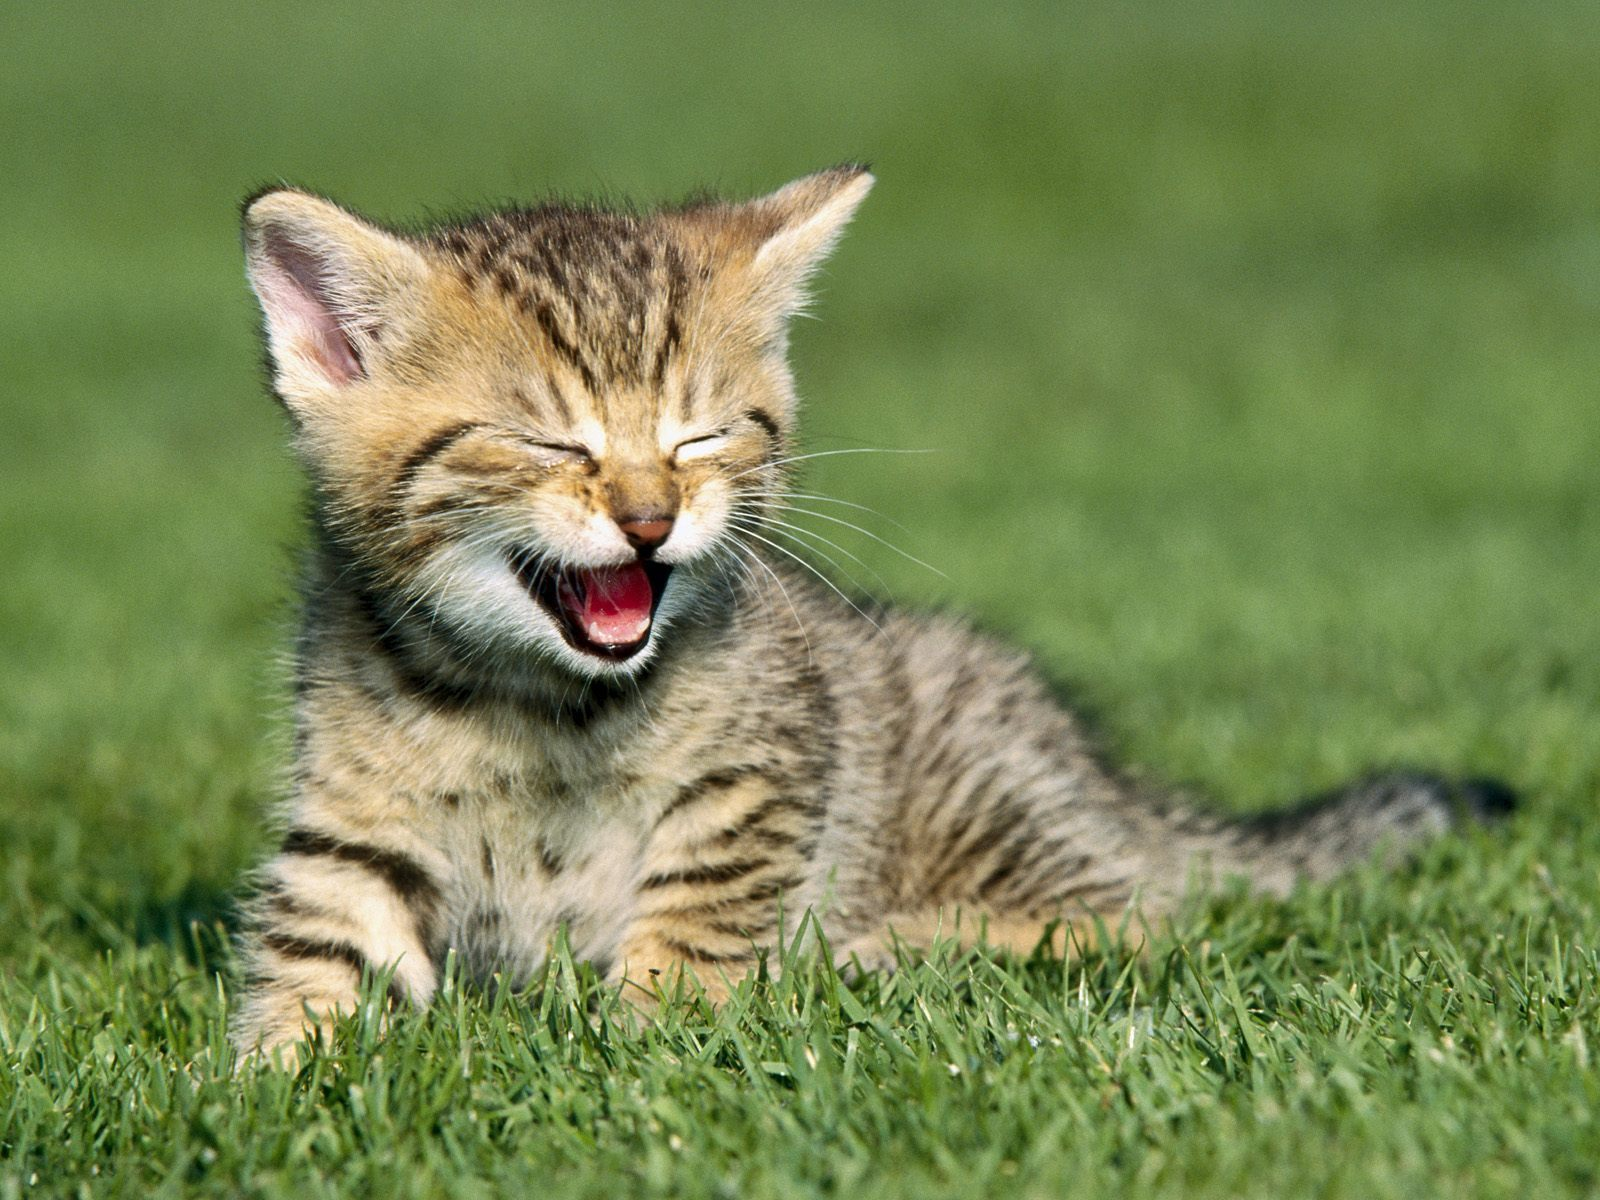 Pictures Of Animals, Happy Kitten on a Lawn 365.59 Kb